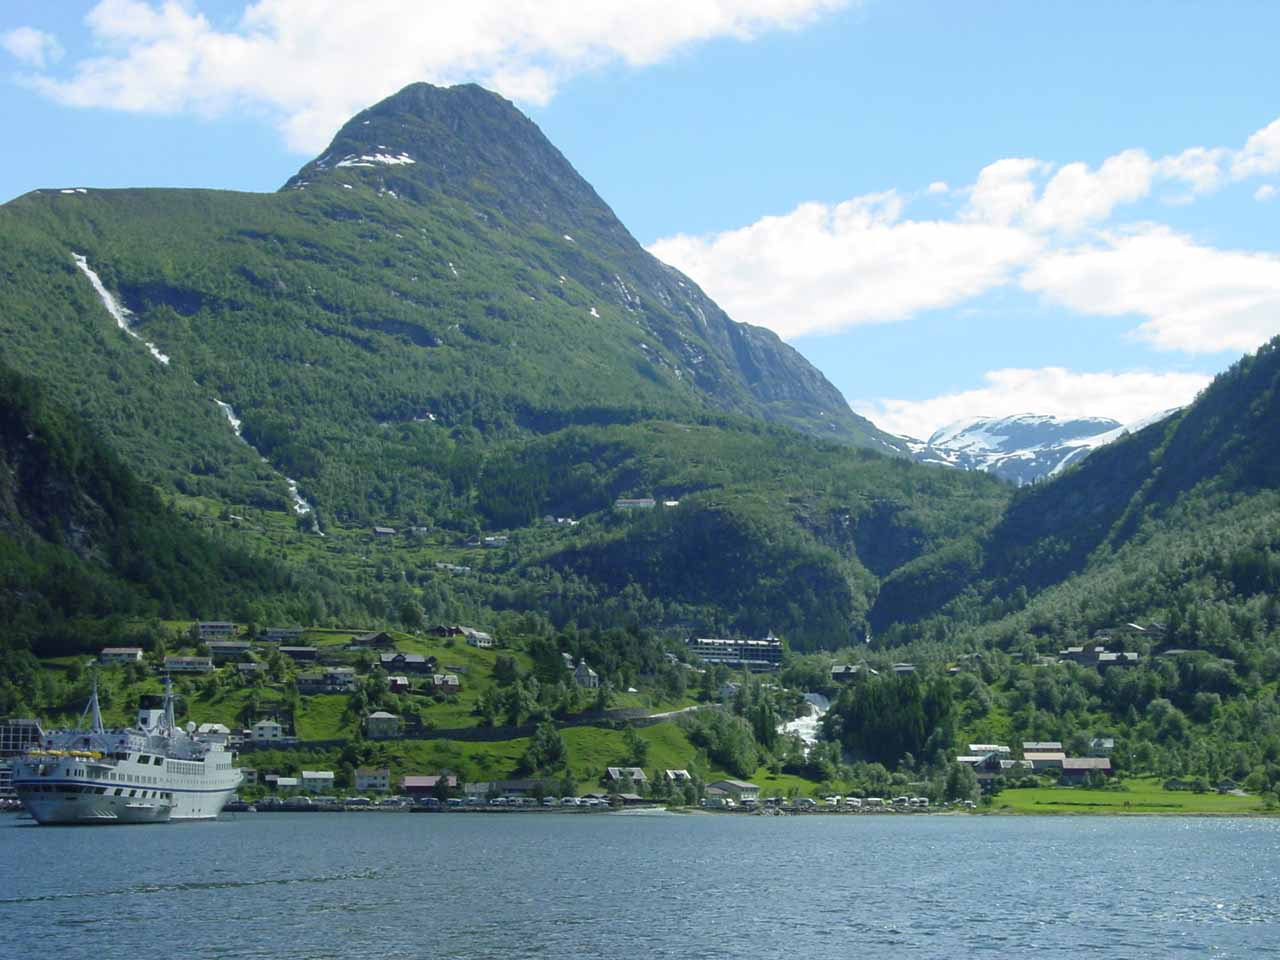 This was the view looking back towards the town of Geiranger (note Grinddalsfossen on the left) from the Geiranger Fjord Cruise, which we did before doing the hike to Storsæterfossen